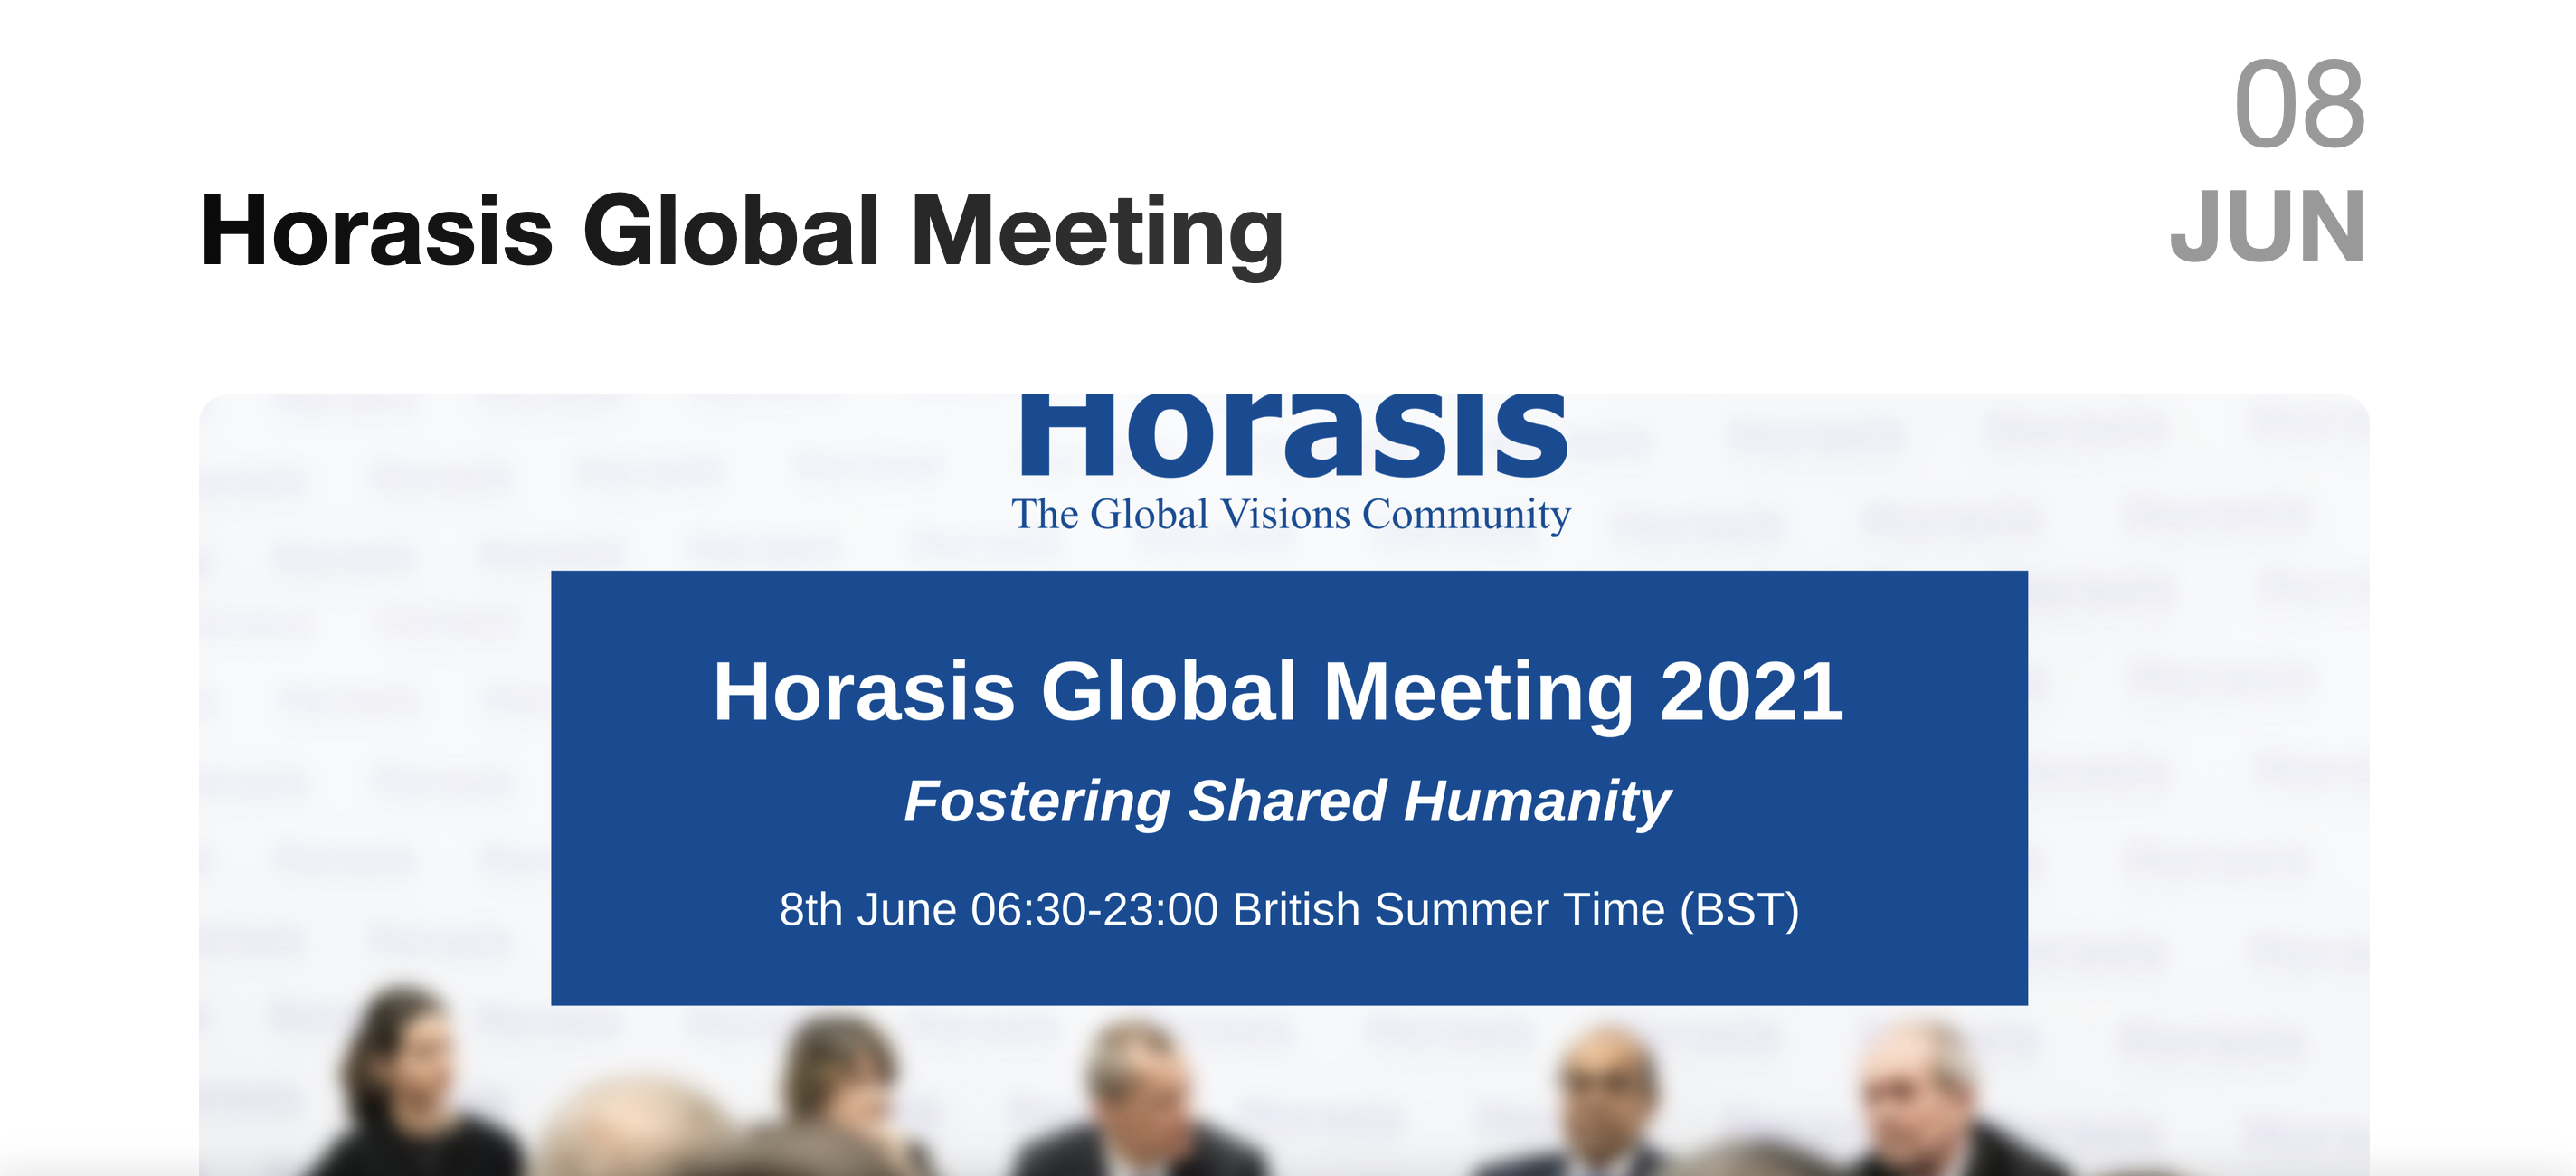 Our UK Company Director Jarvous C Speaks At Horasis Global Meeting On The 8th Of June 2021